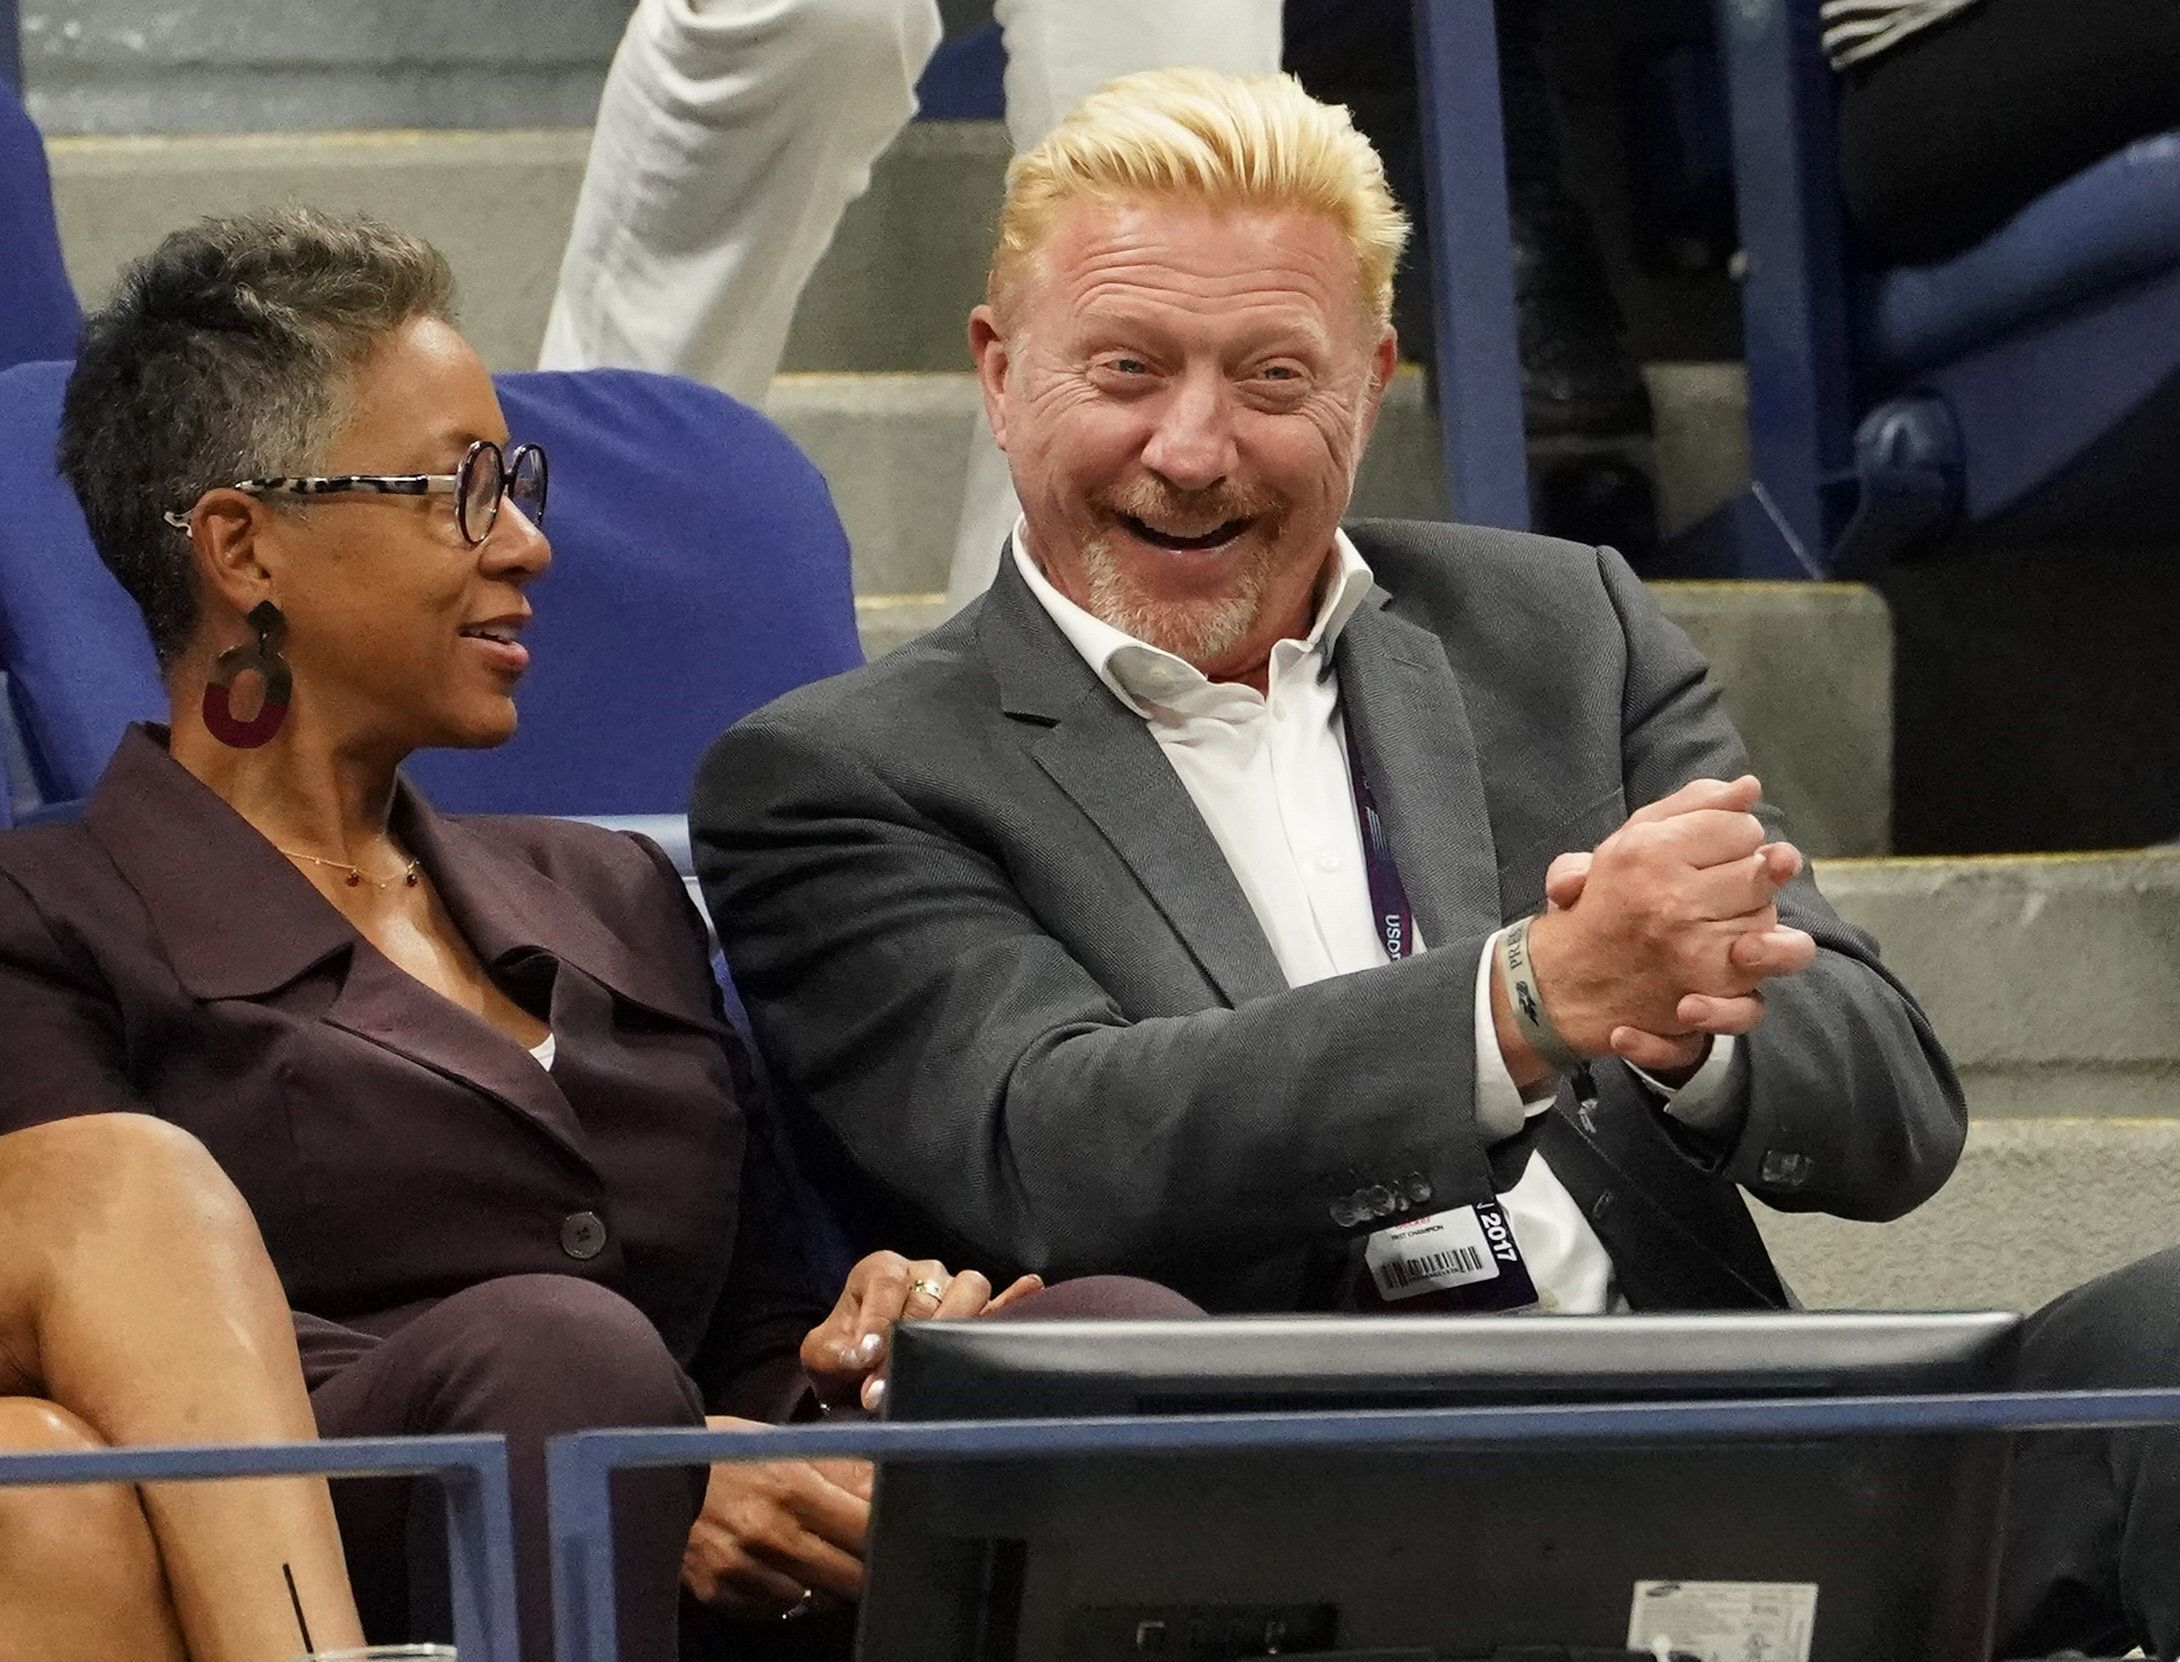 Boris Becker's Shot At Diplomatic Immunity Could Be Inspired By These Bizarre